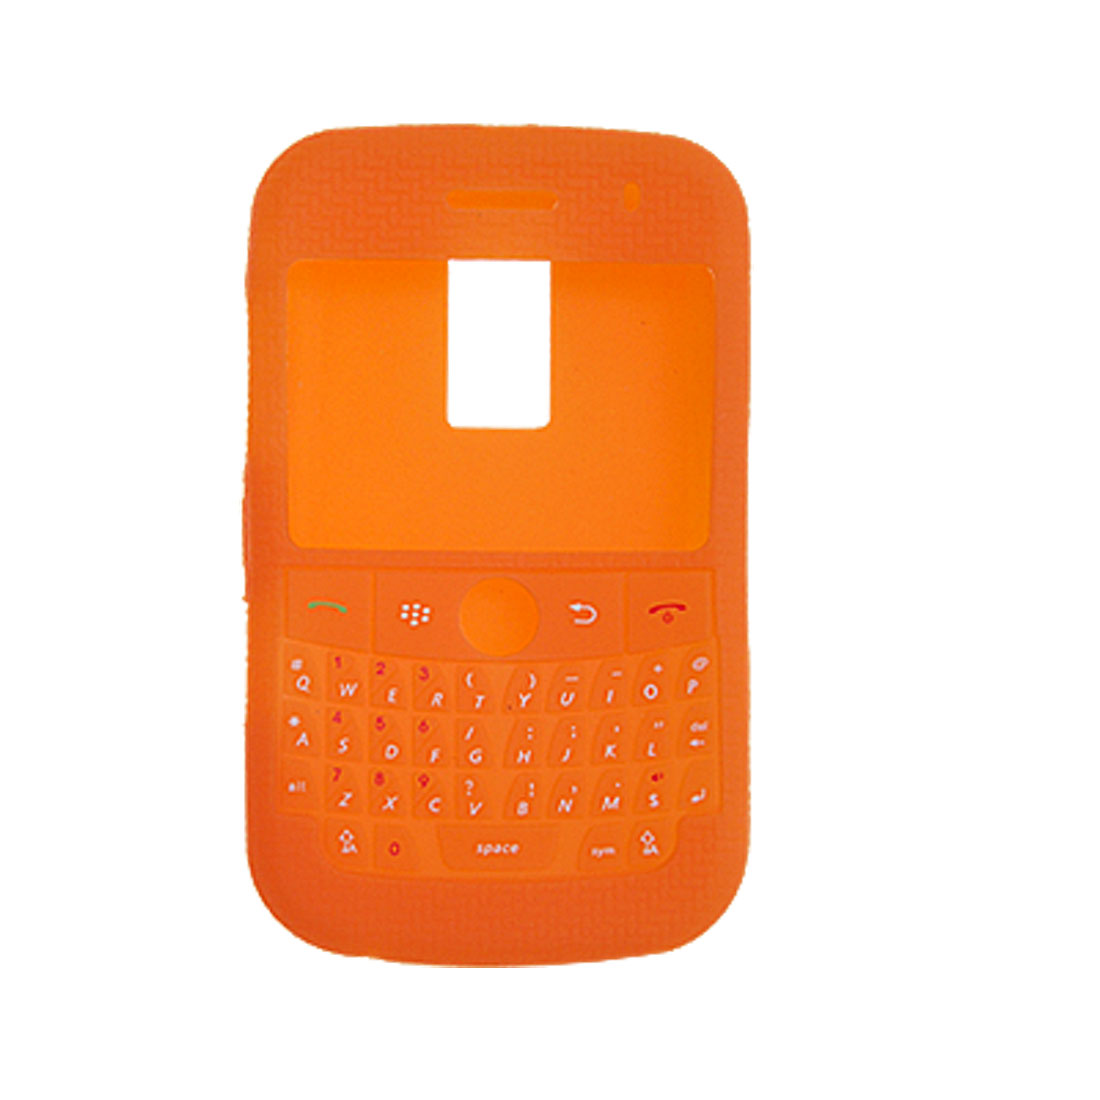 Stylish Non-slip Orange Silicone Skin Case Cover for Blackberry 9000